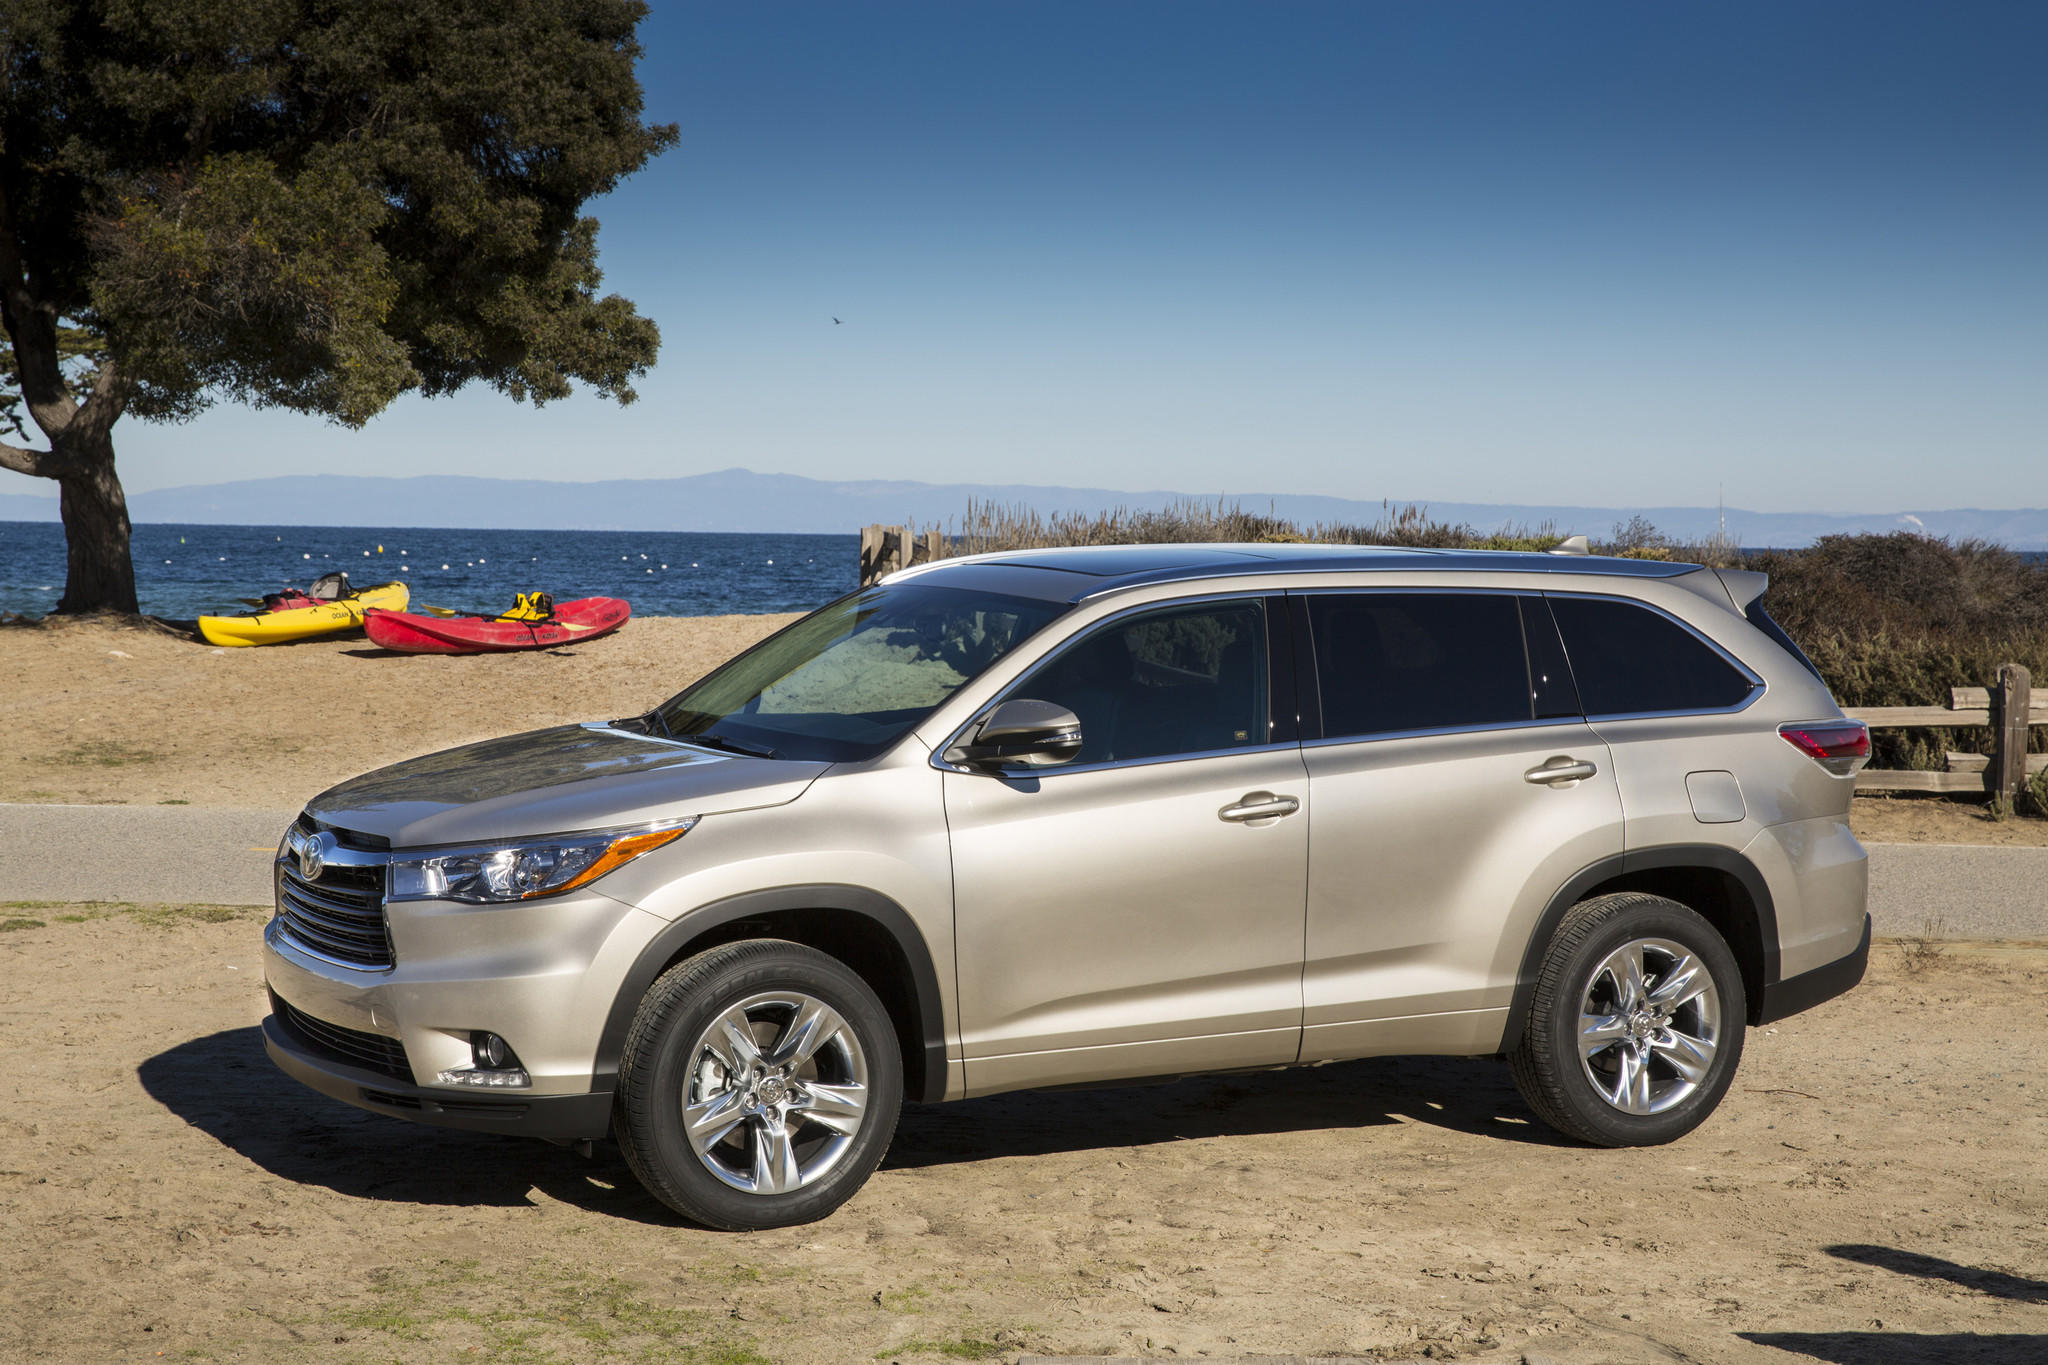 Toyota is recalling more than 7,000 of its 2014 Highlander crossovers to fix a potential issue with the seat belt for the middle seat in the third row.